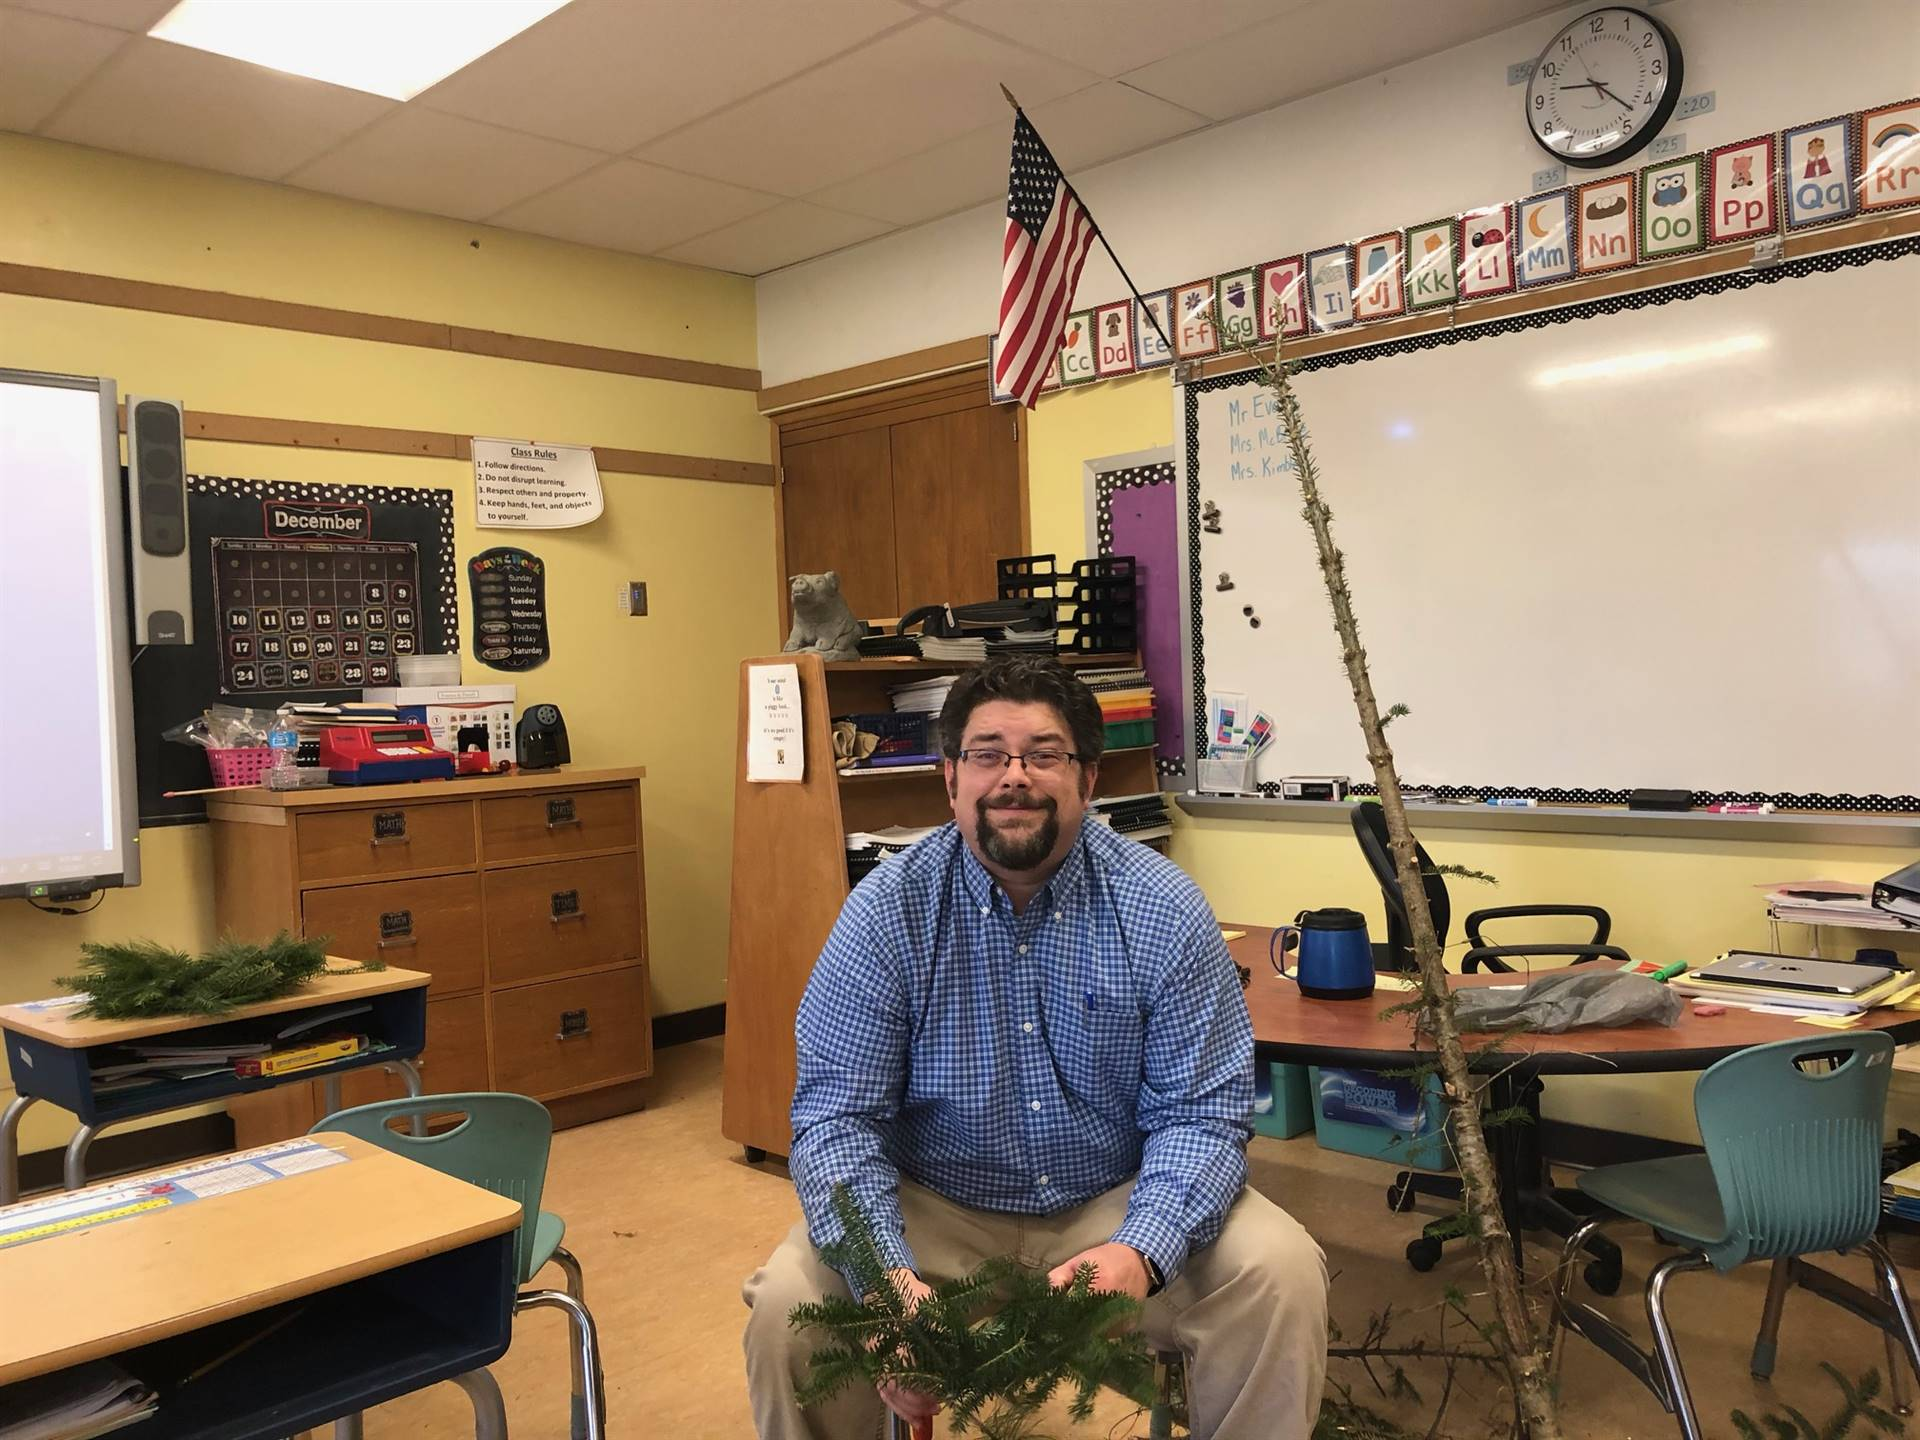 Mr. Evans cutting the branches for the wreaths